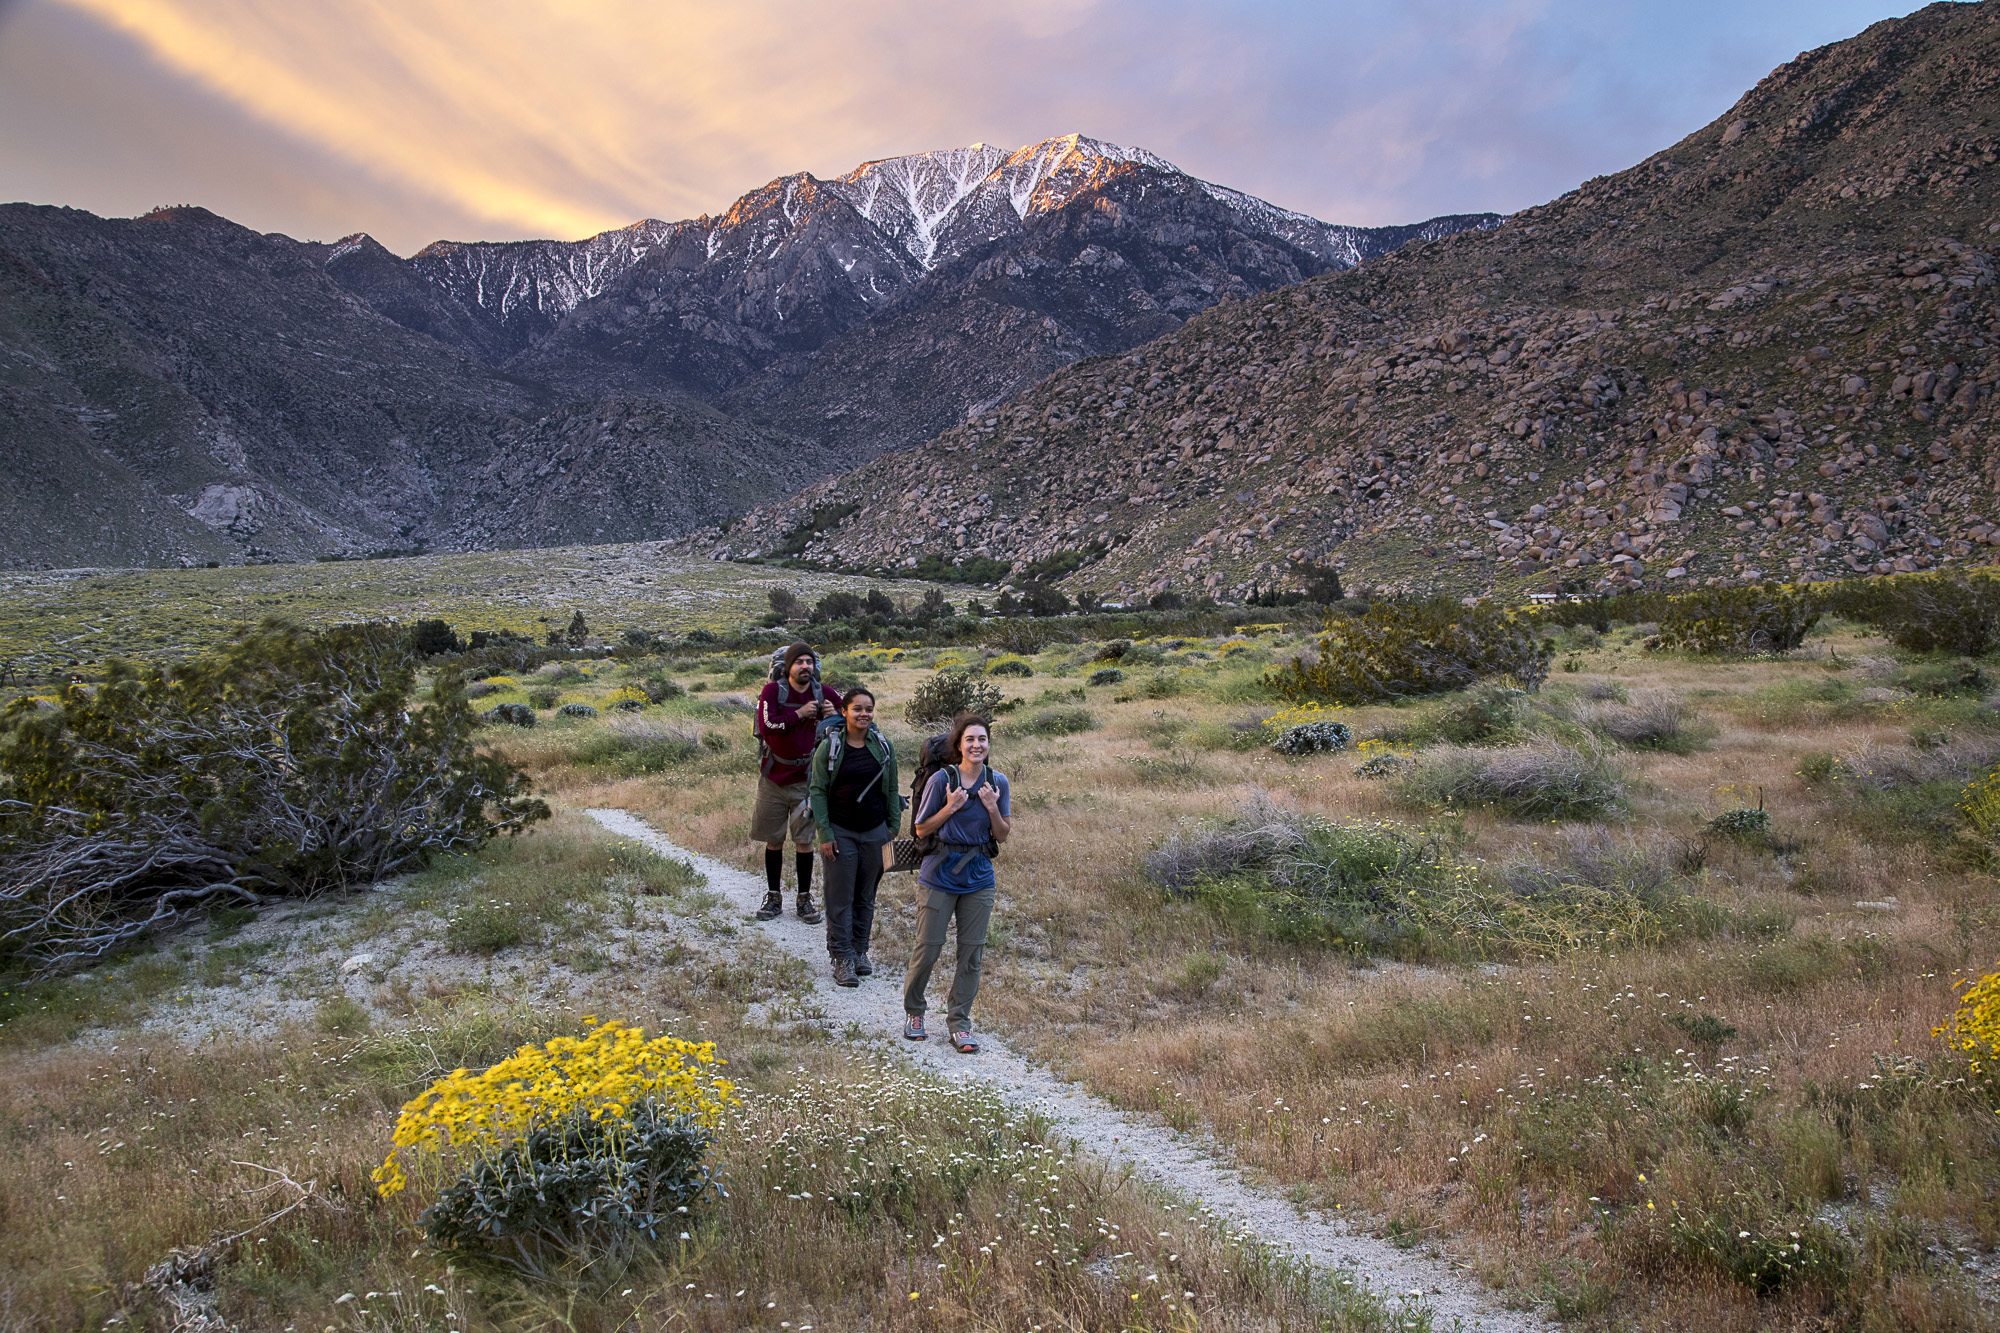 pacific crest trail in california image - free stock photo - public domain photo